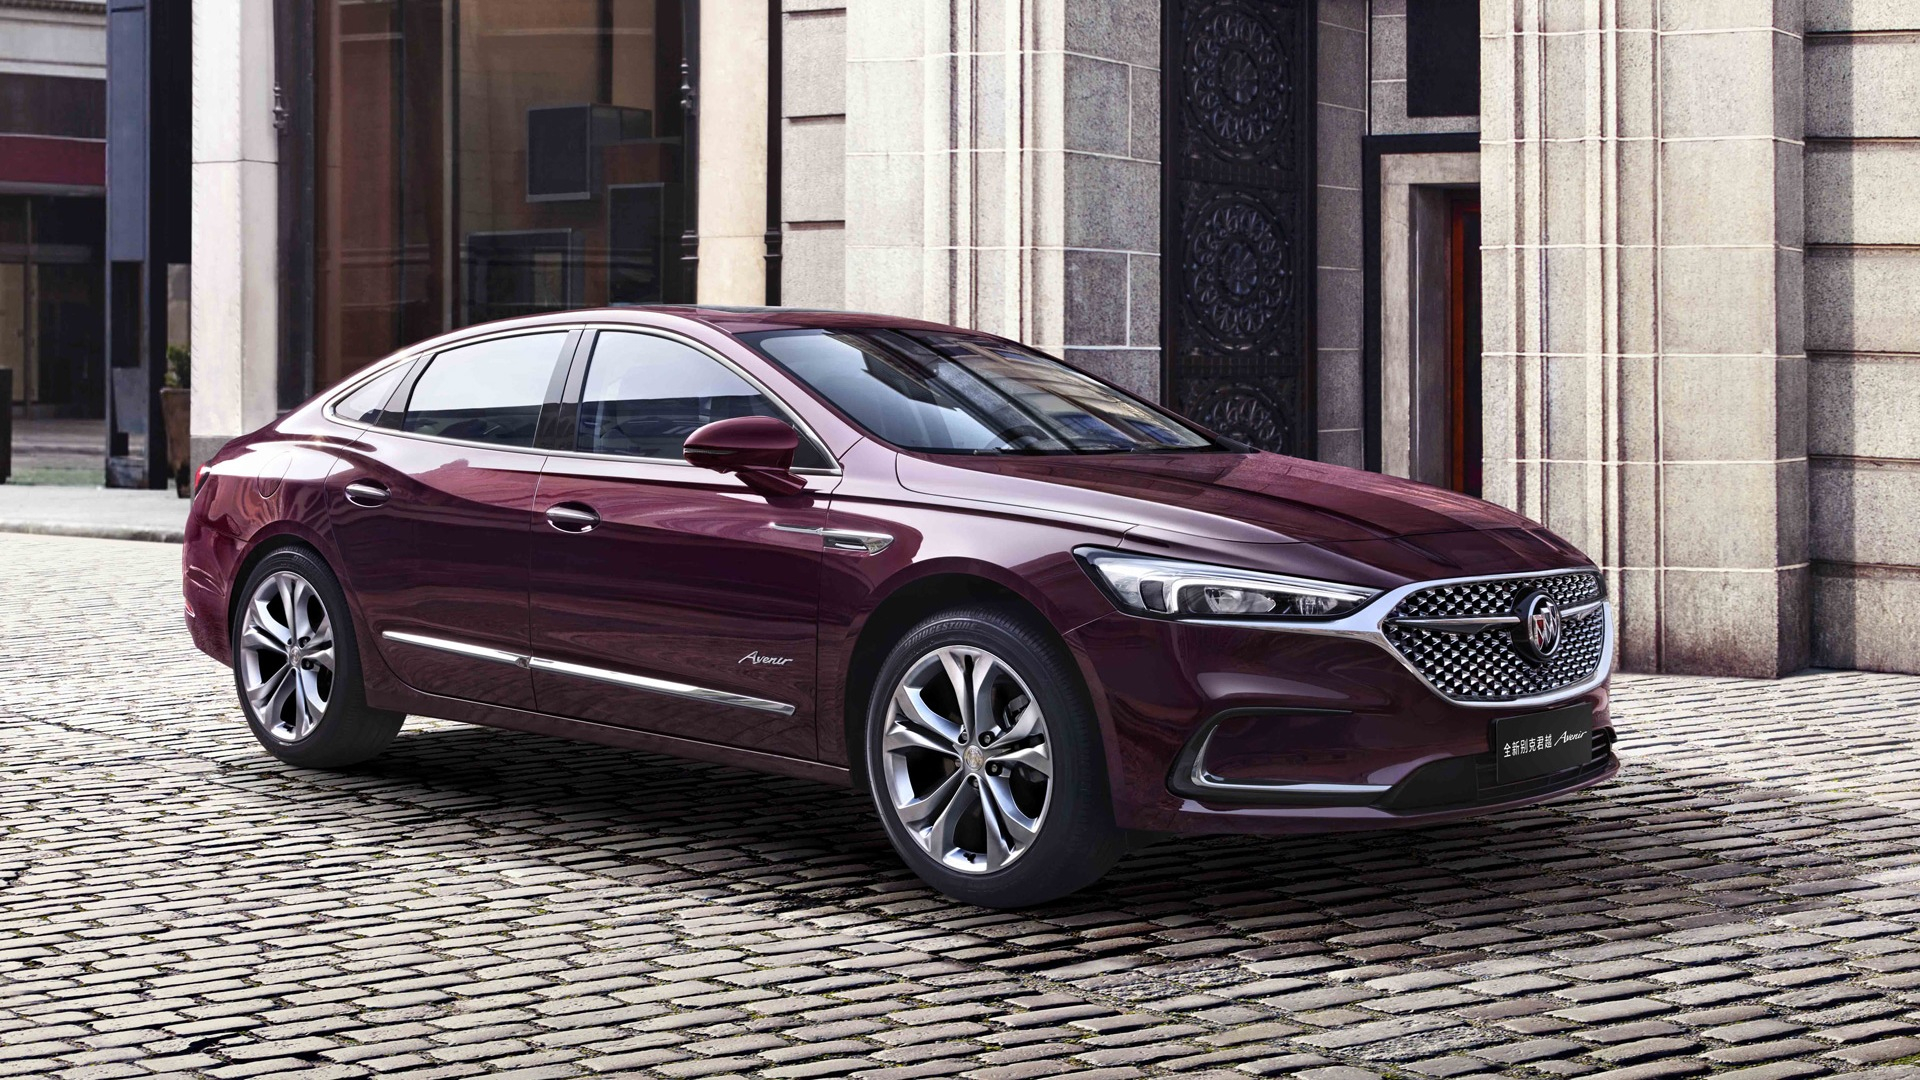 Car Spy Shots, News, Reviews, And Insights - Motor Authority 2022 Buick Lacrosse Brochure, Release Date, Colors